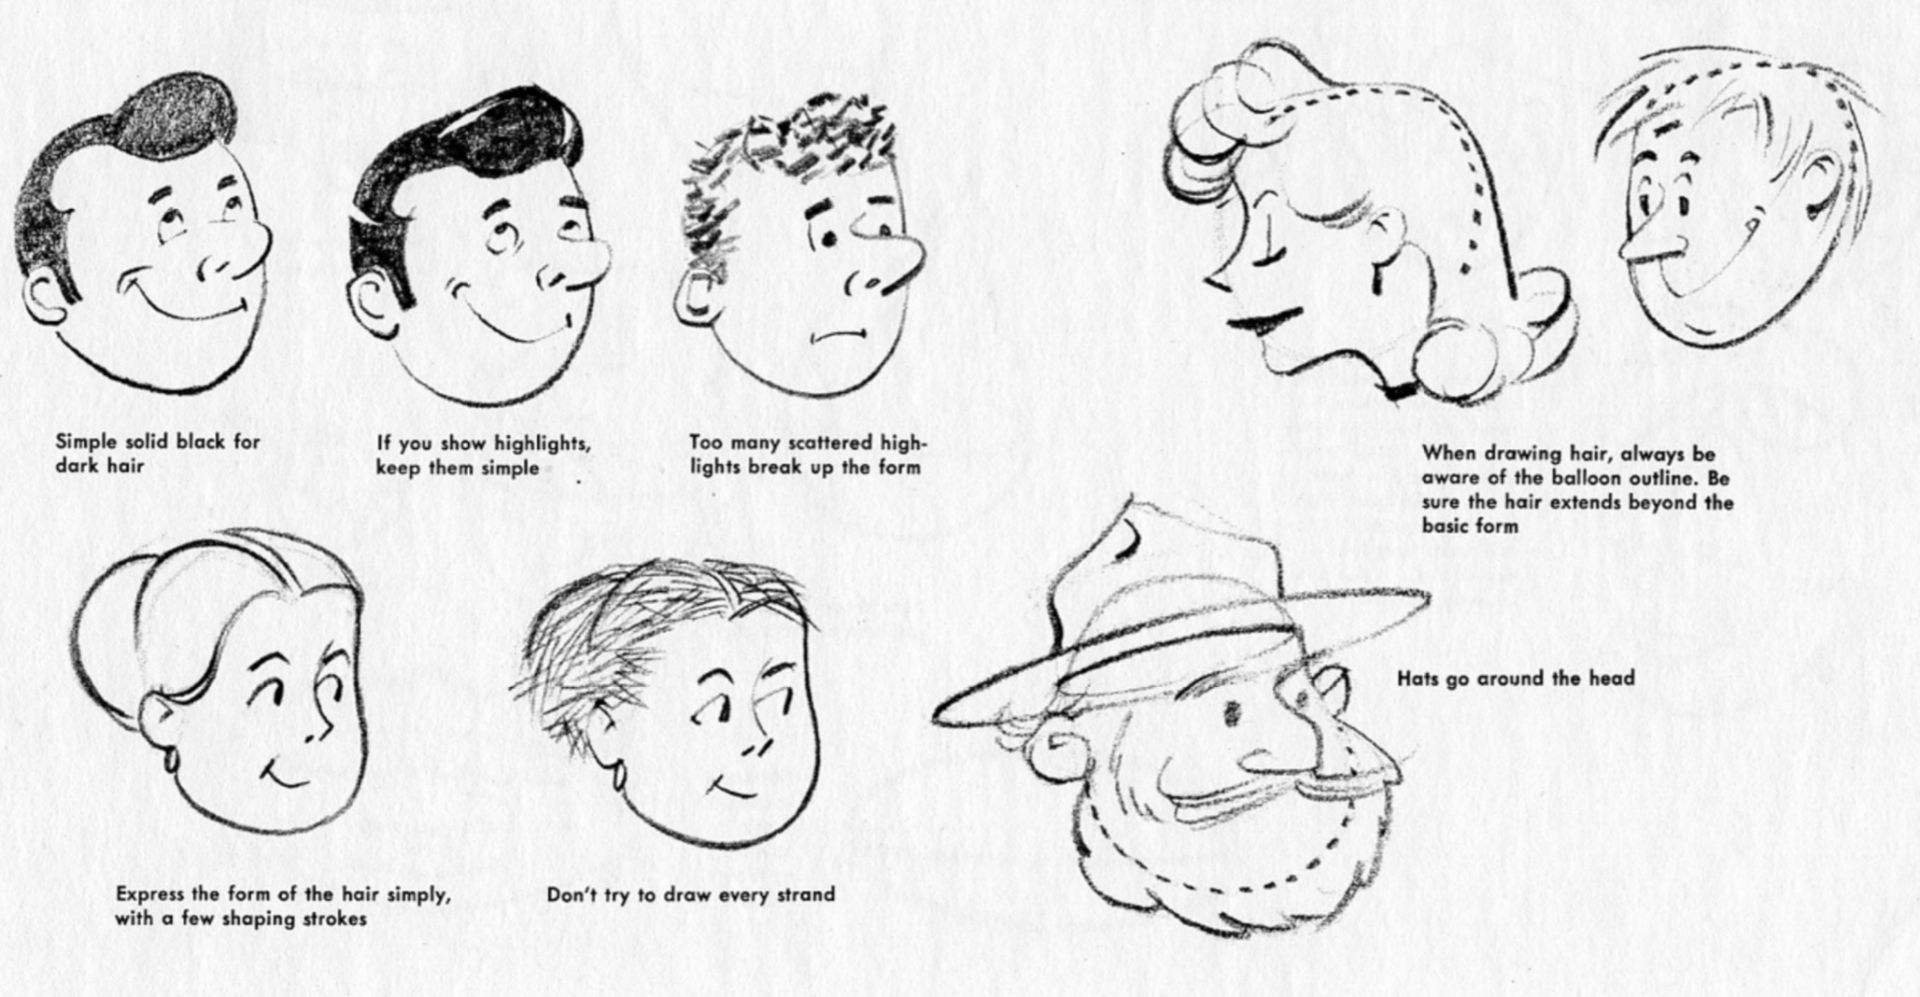 Learn To Draw Cartoons Is A Series Of Articles Based On